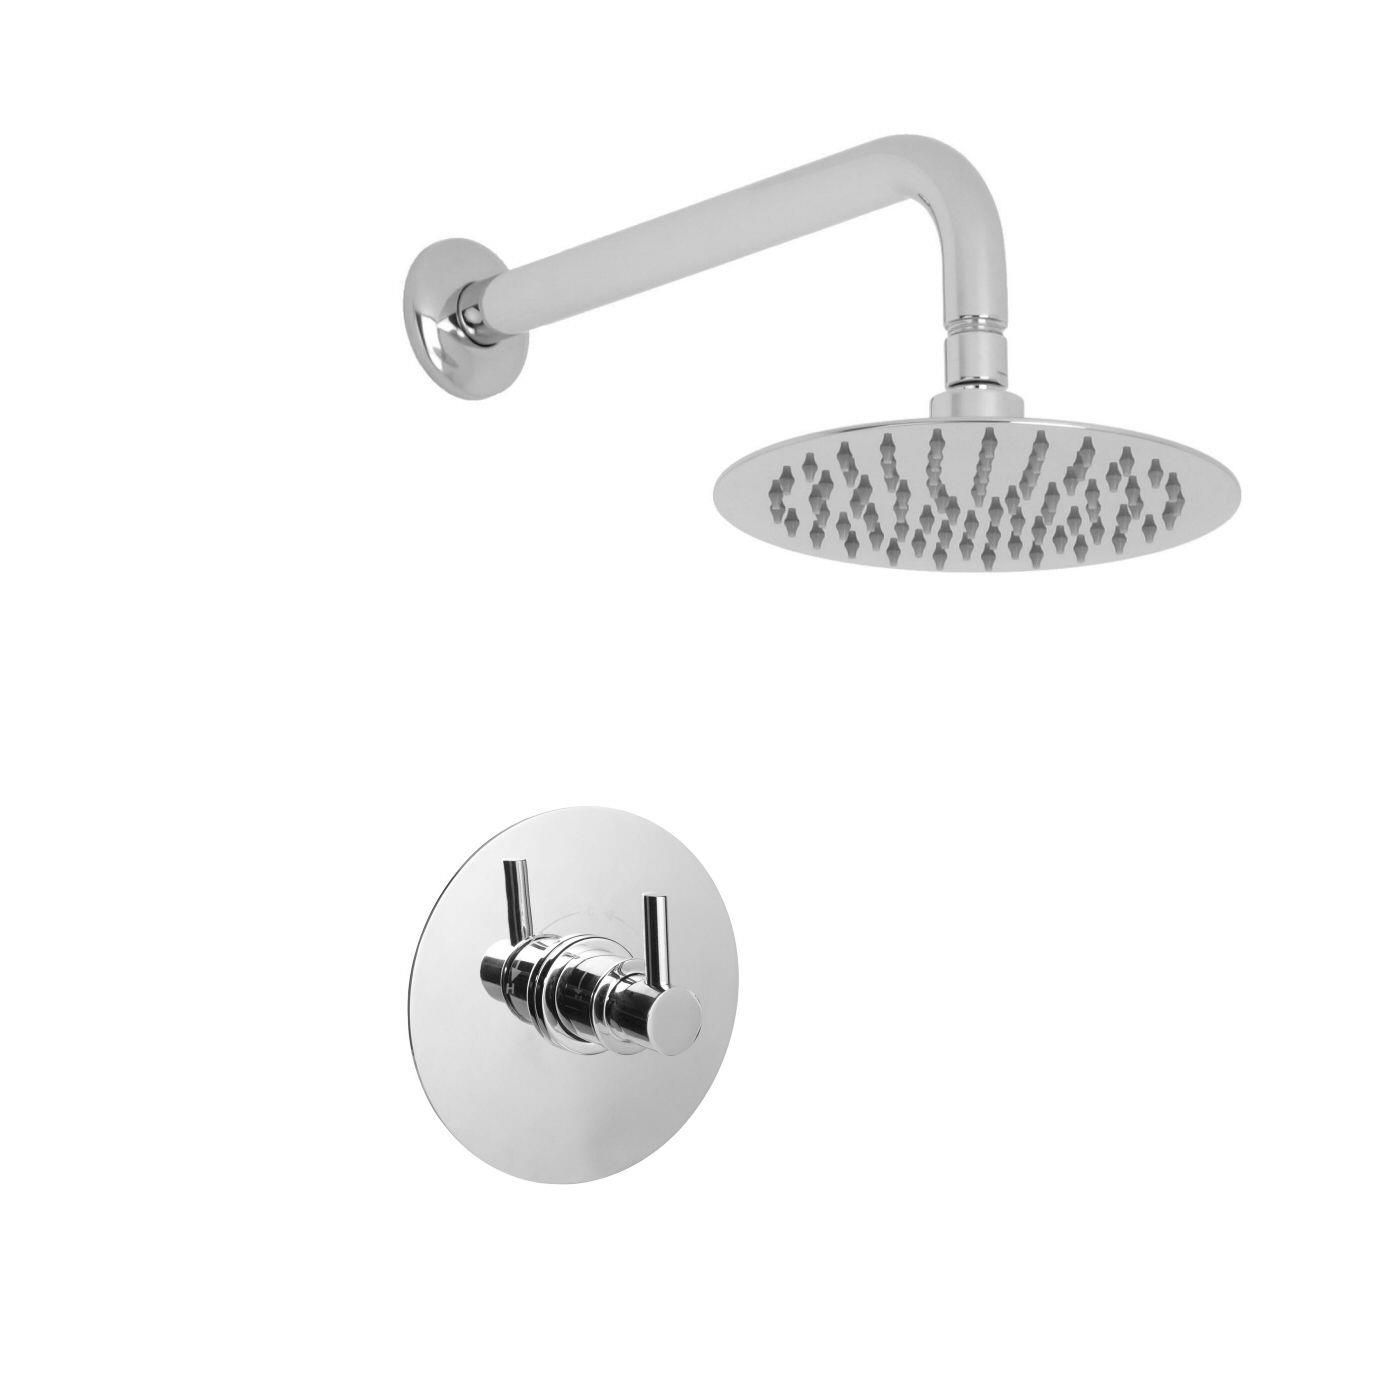 "Valquest 1/2"" Sequential Valve with 8"" Round Thin Shower Head & Wall Arm"